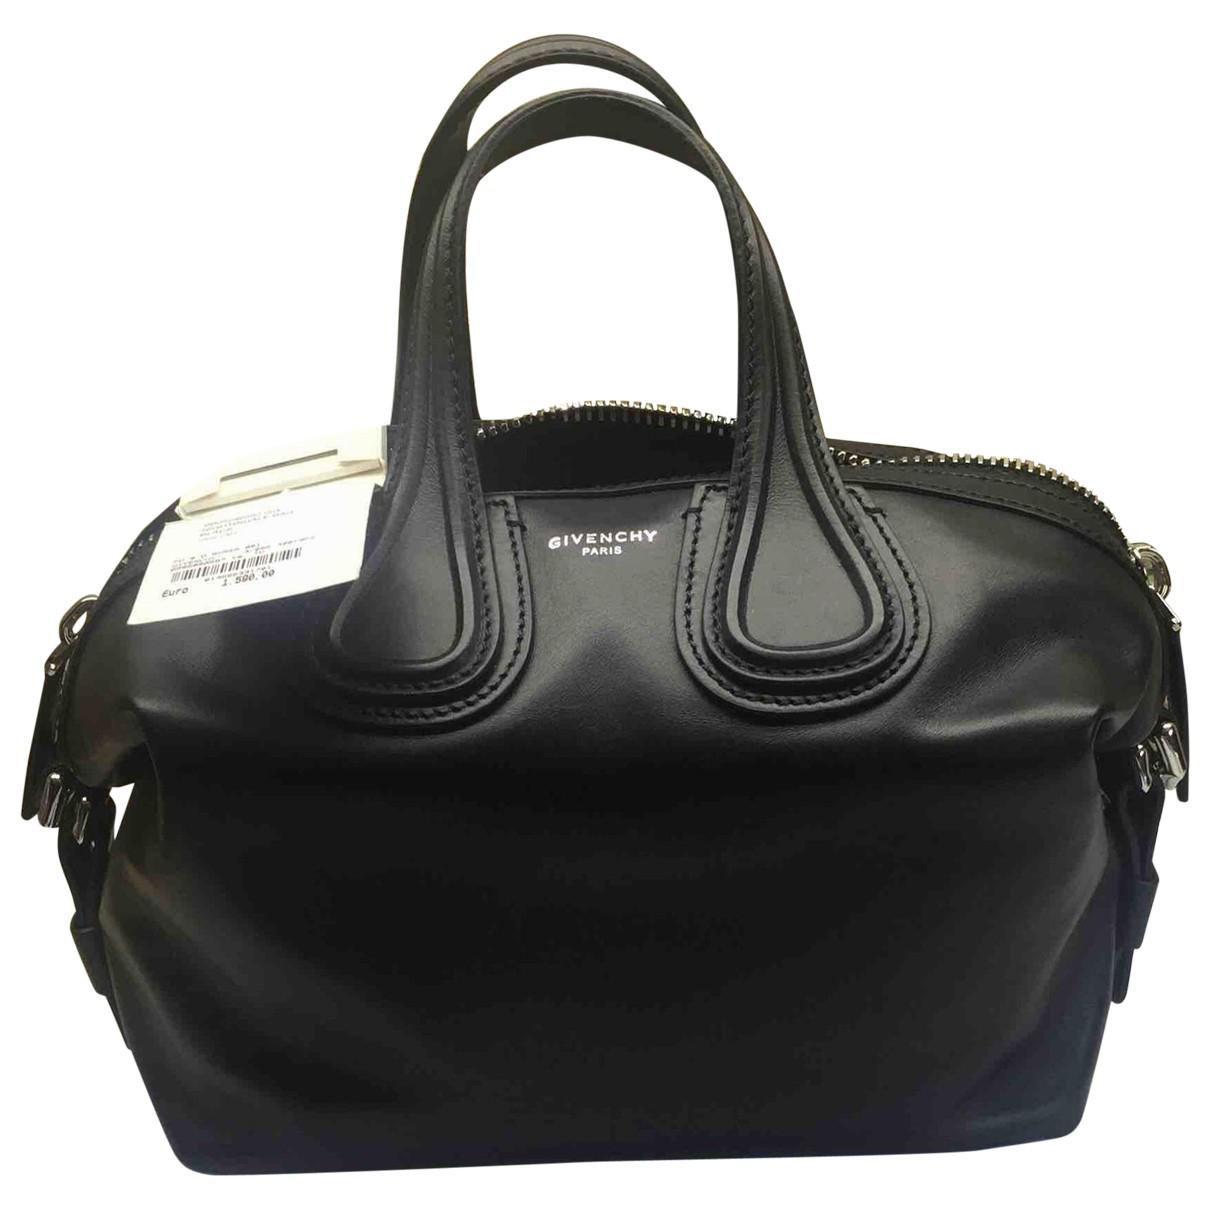 Givenchy Pre-owned - Nightingale patent leather handbag JJ6aje